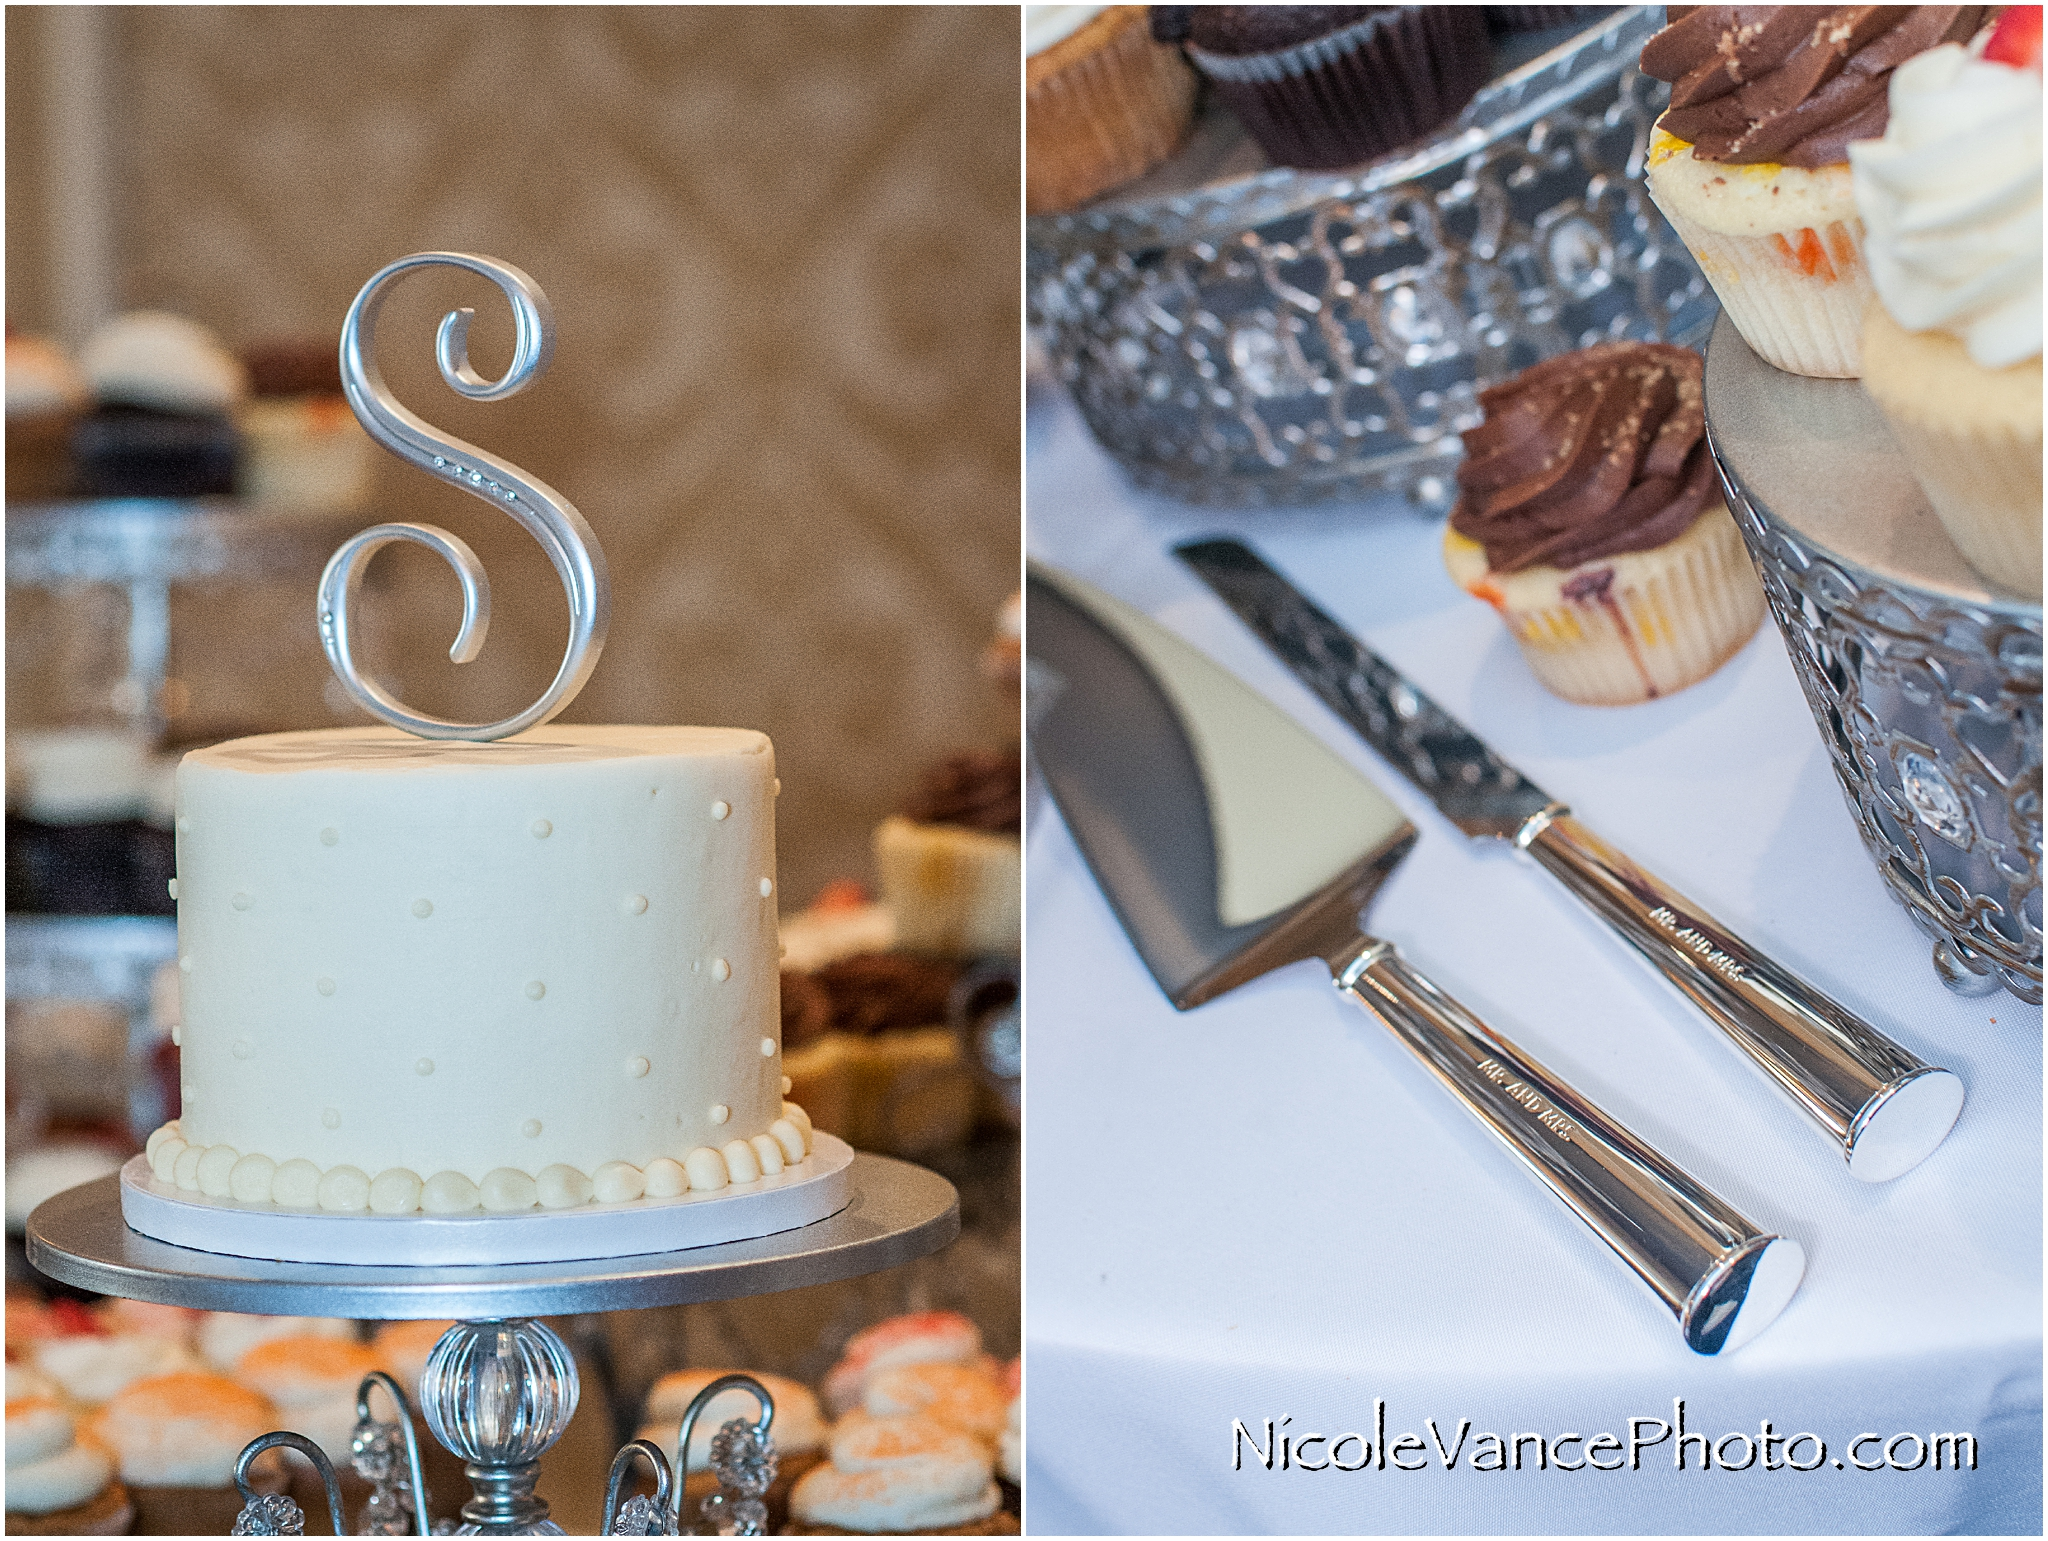 Wedding cake by Pearl's and Mr & Mrs Cake utensils.